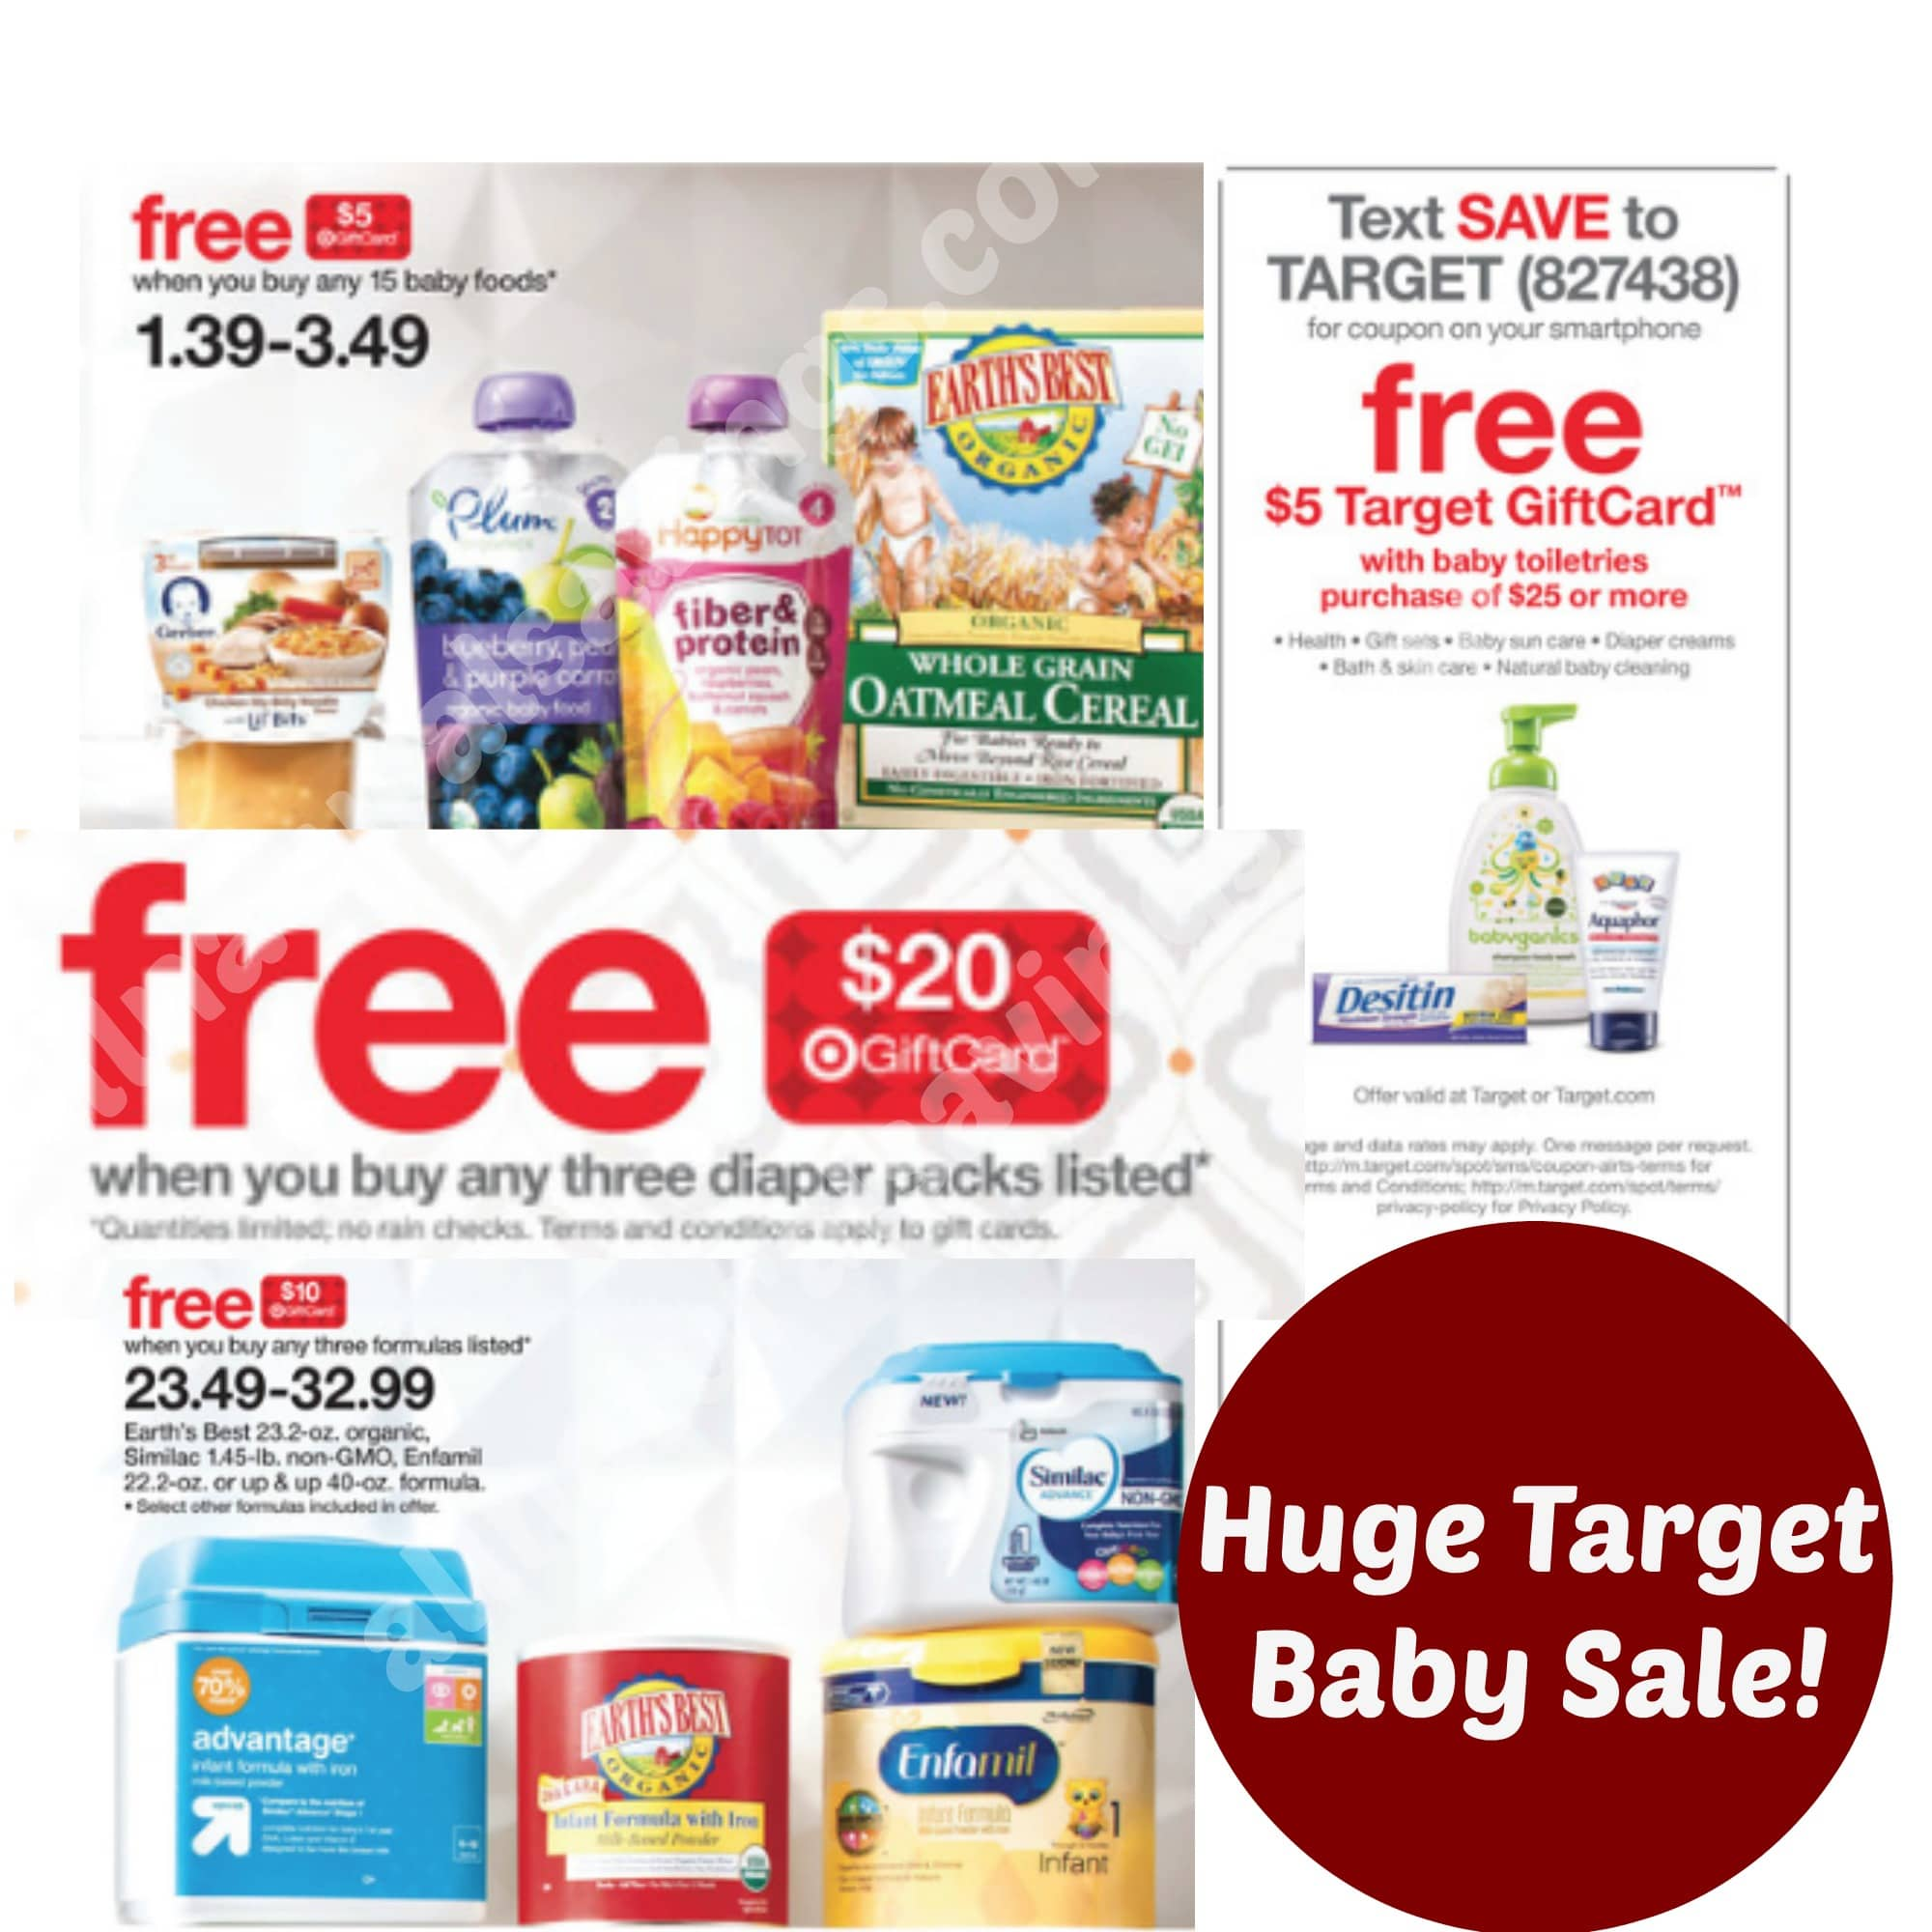 Organic Store Matchups Archives - Page 464 of 697 - All